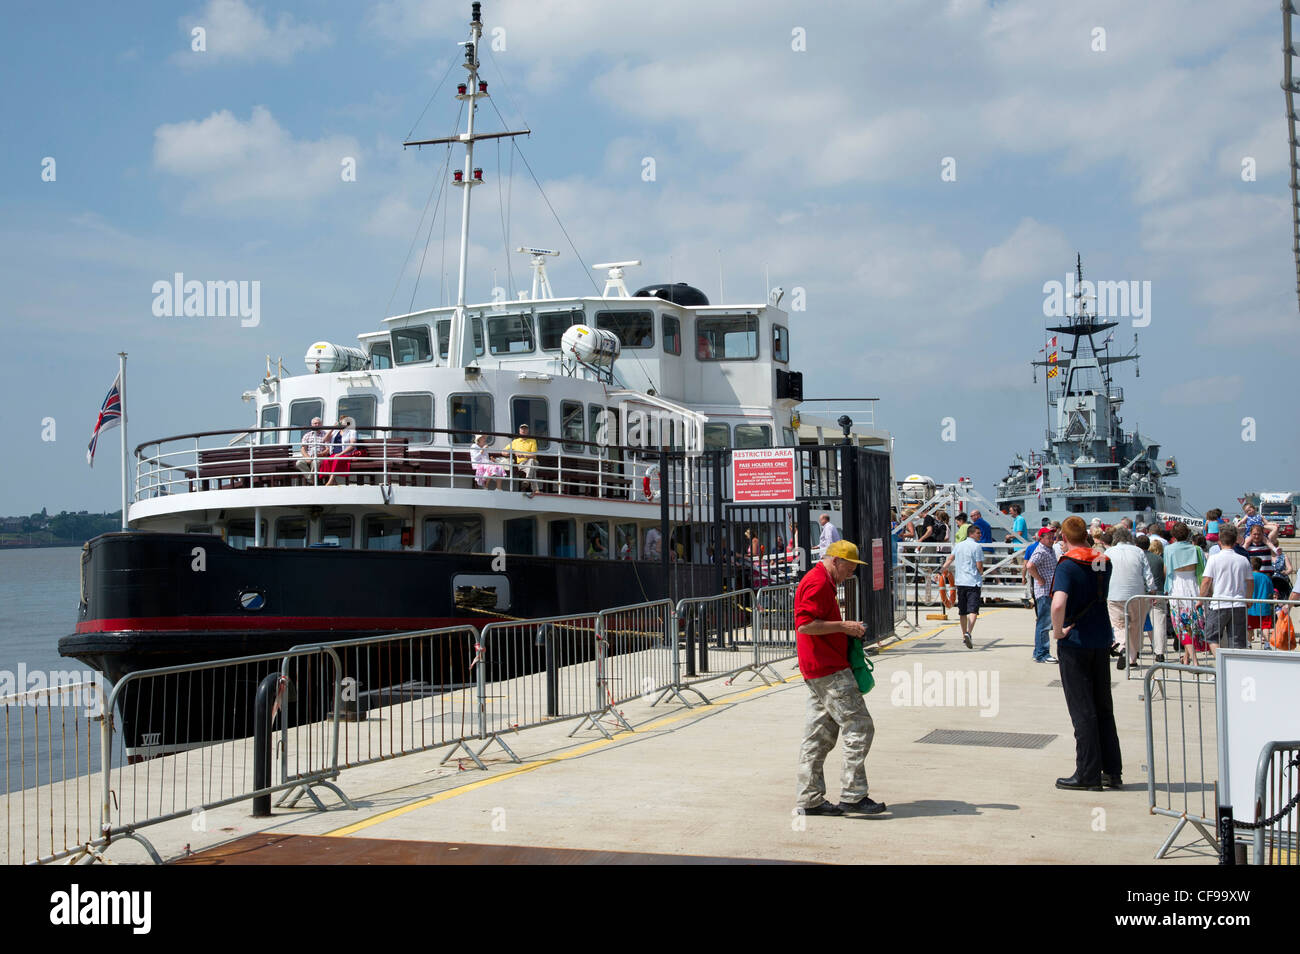 The Pier Head ferry terminal  beside Albert Dock on the waterfront of the River Mersey. - Stock Image